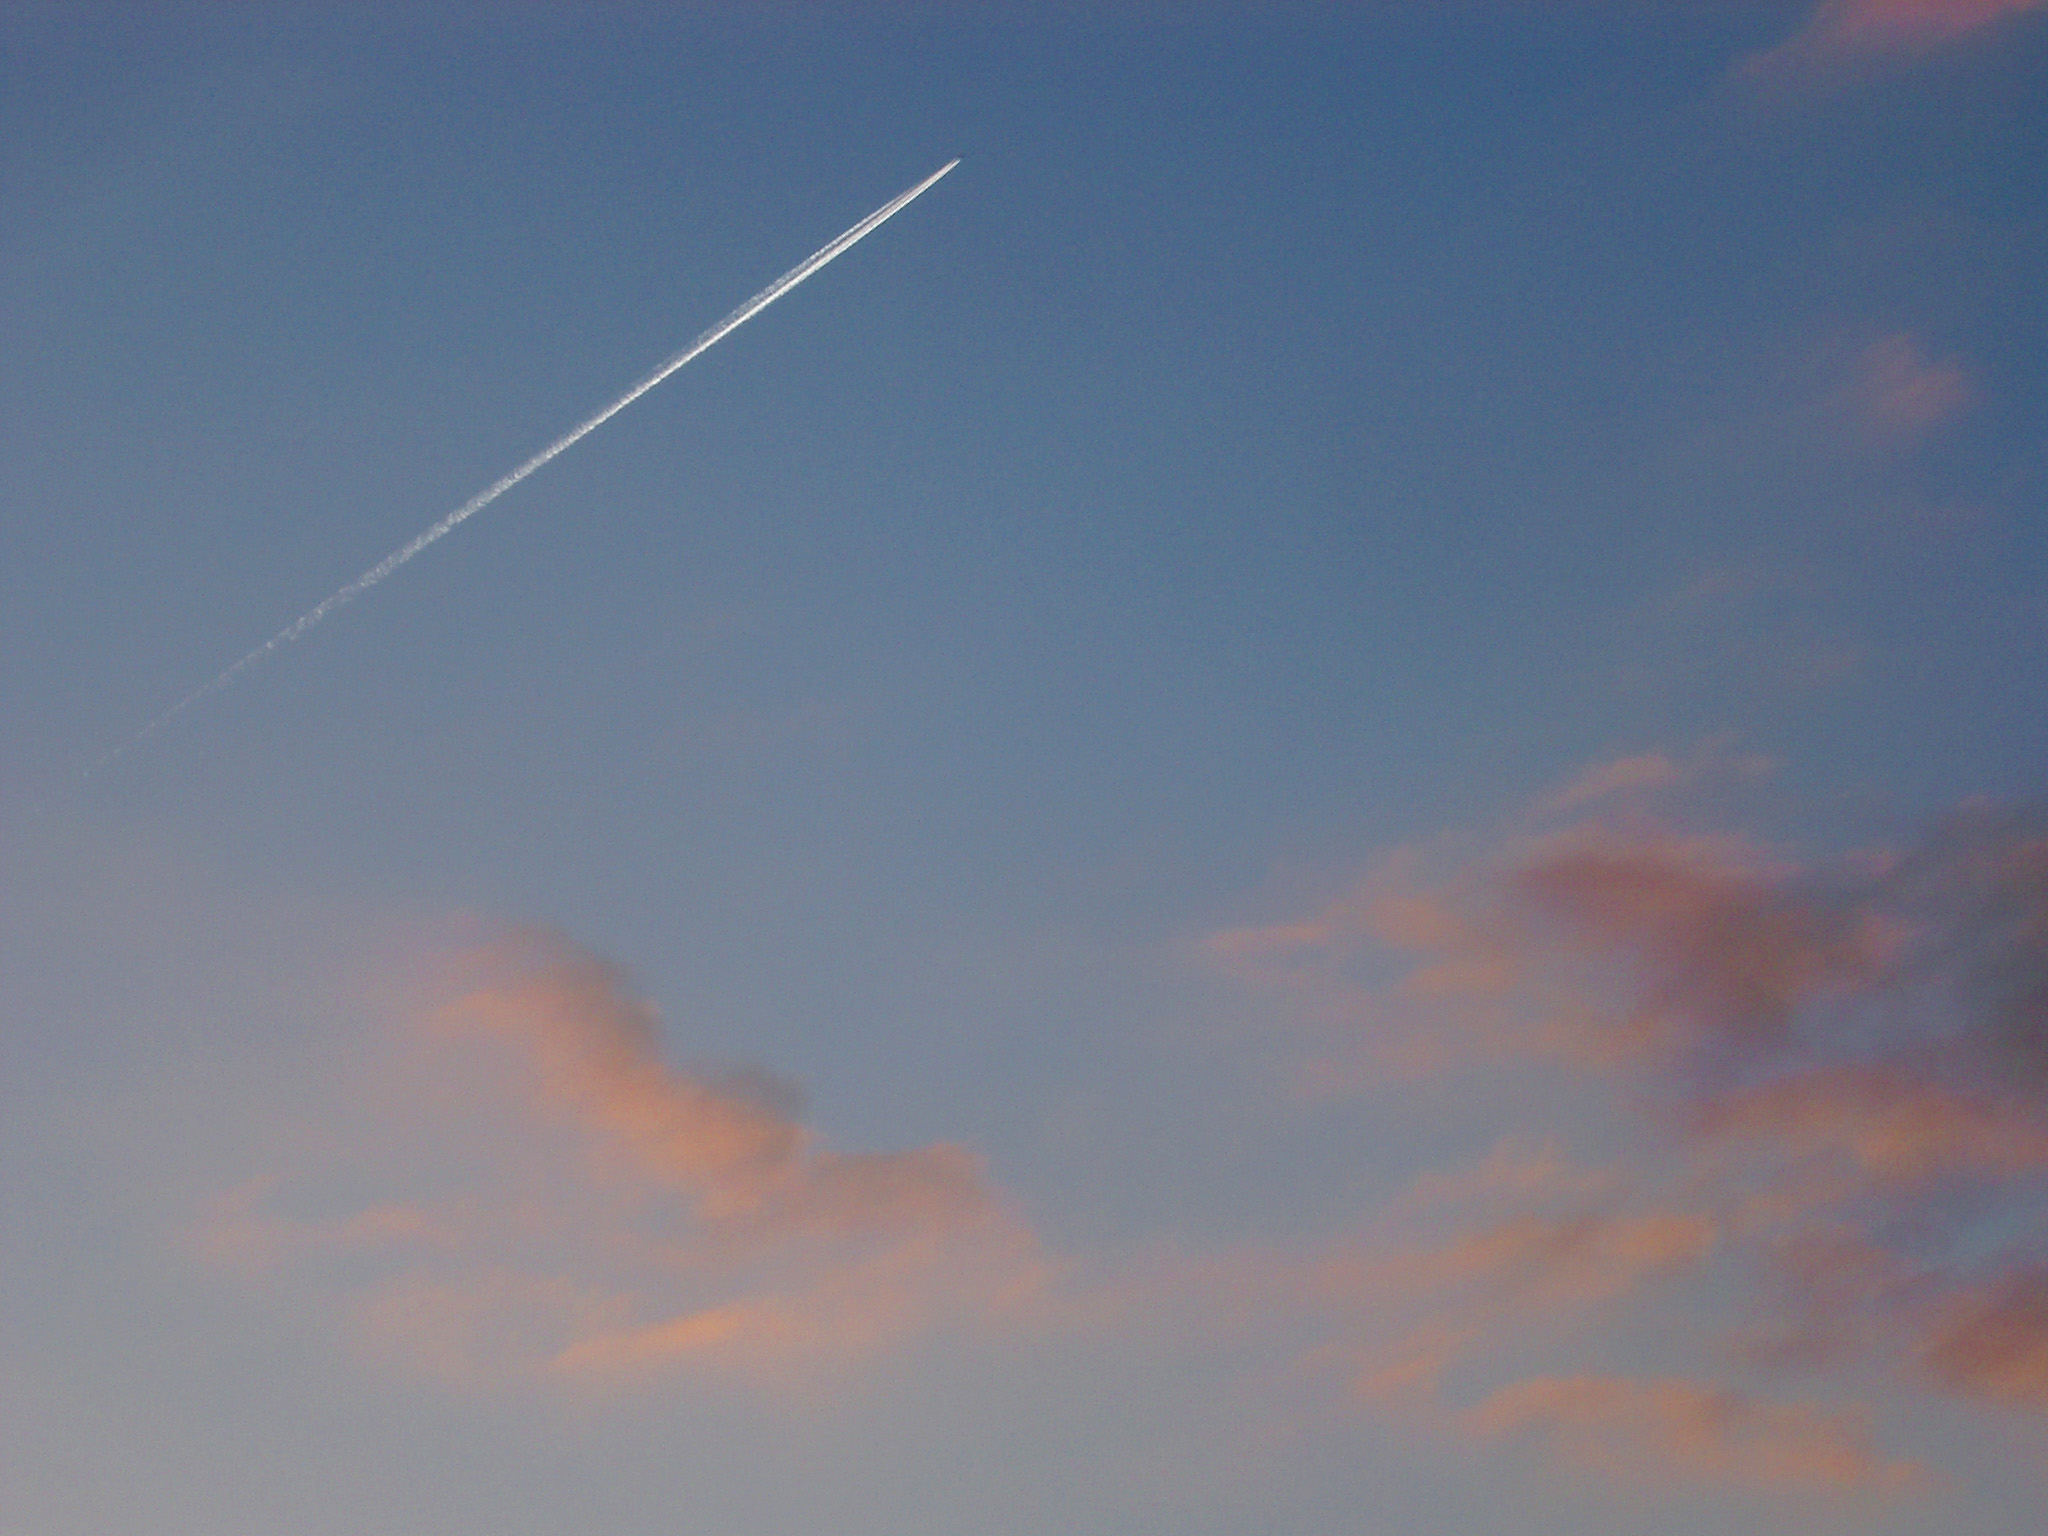 Jet trail or contrail formed by condensation of vapor and ice particles streaking through a blue sky at sunset with colorful pink clouds